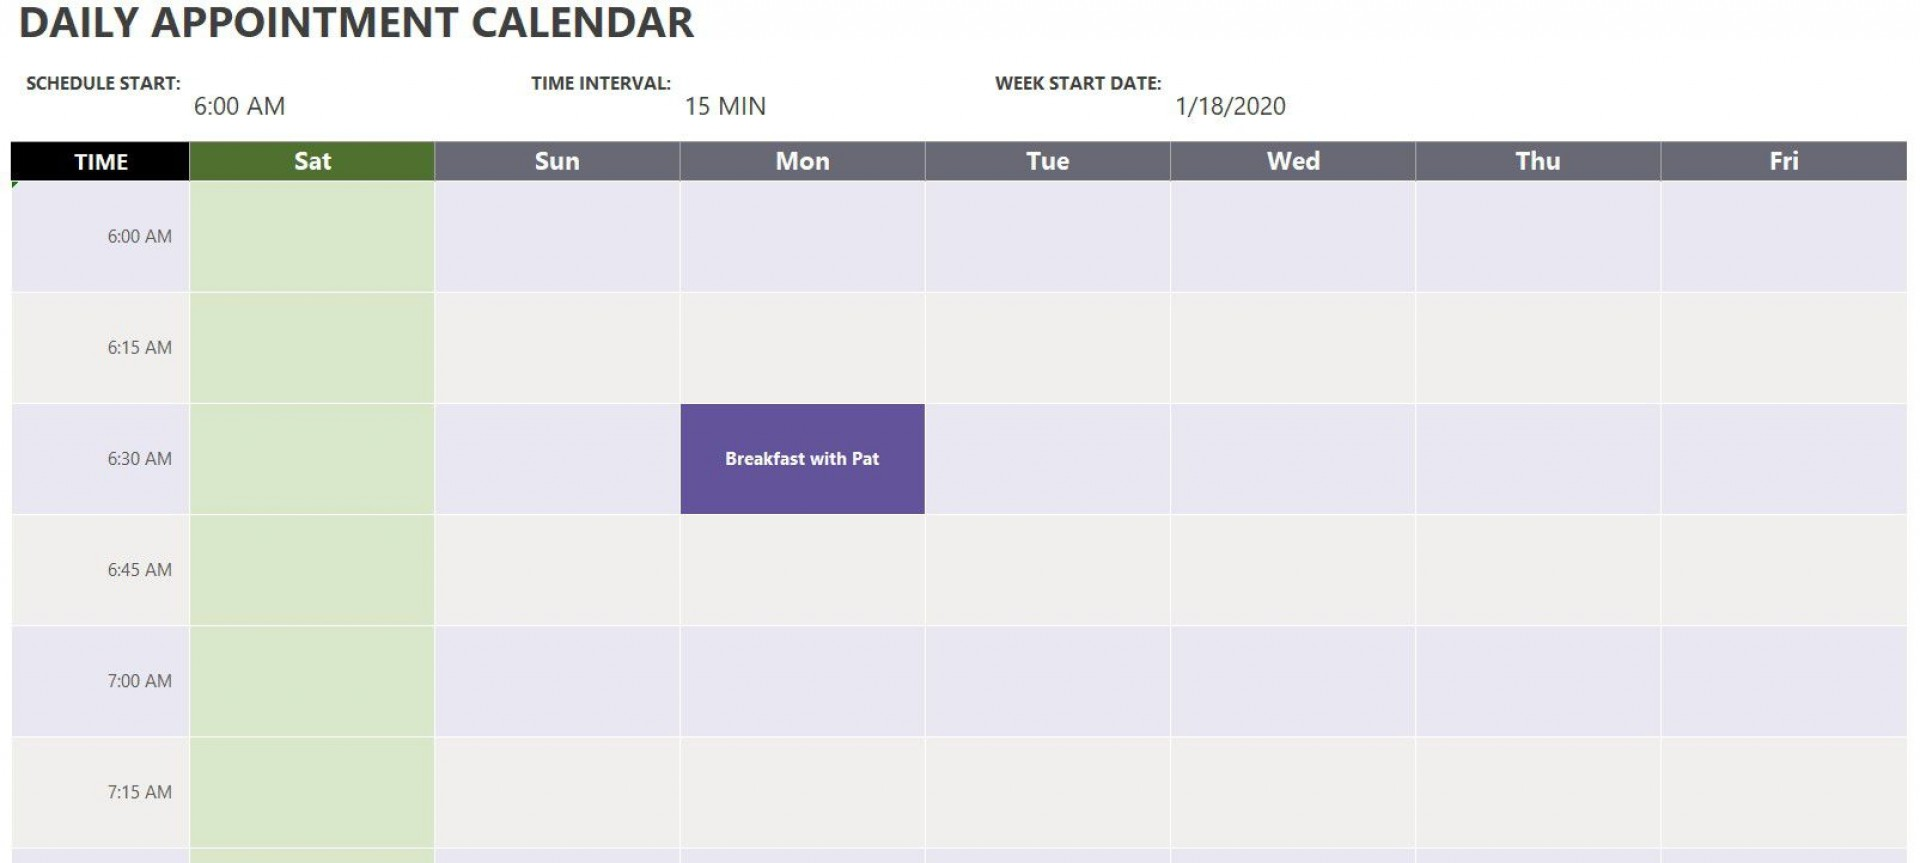 002 Awful Daily Calendar Template Excel Highest Clarity 1920